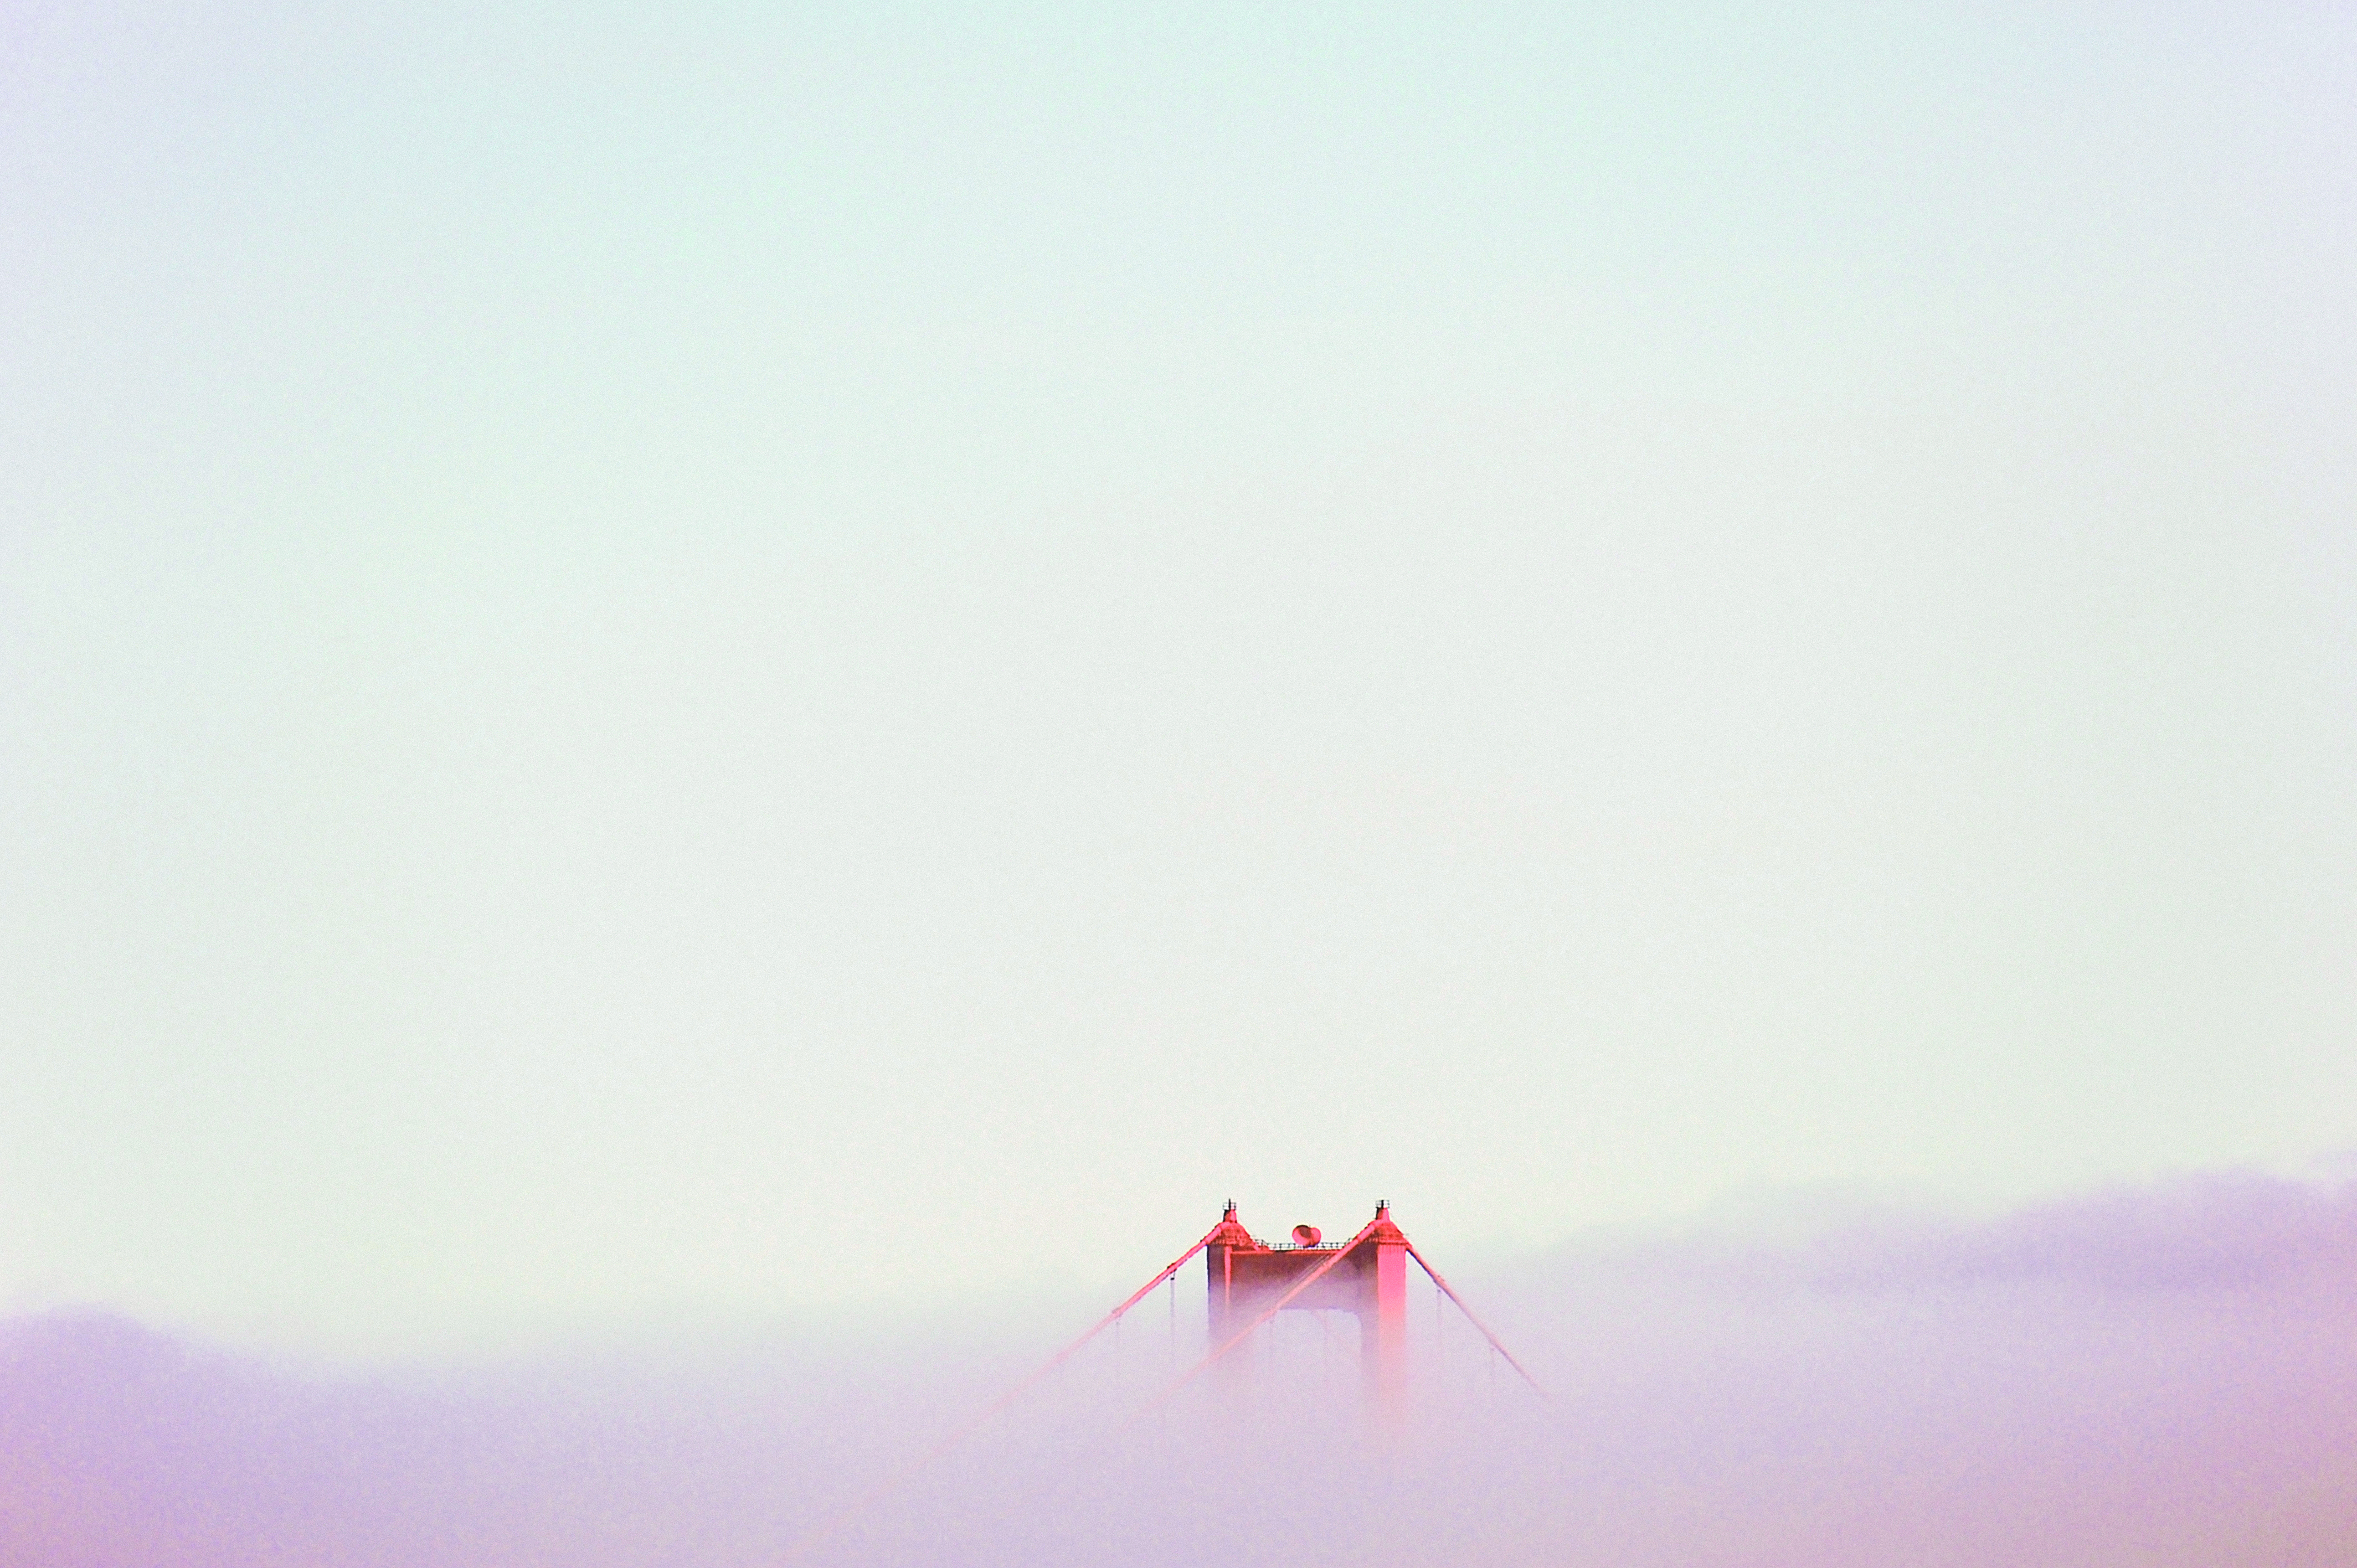 The Golden Gate Bridge in San Francisco rising out of the mist. (Justin Chung for the cover of Cereal, volume 10). readcereal.com